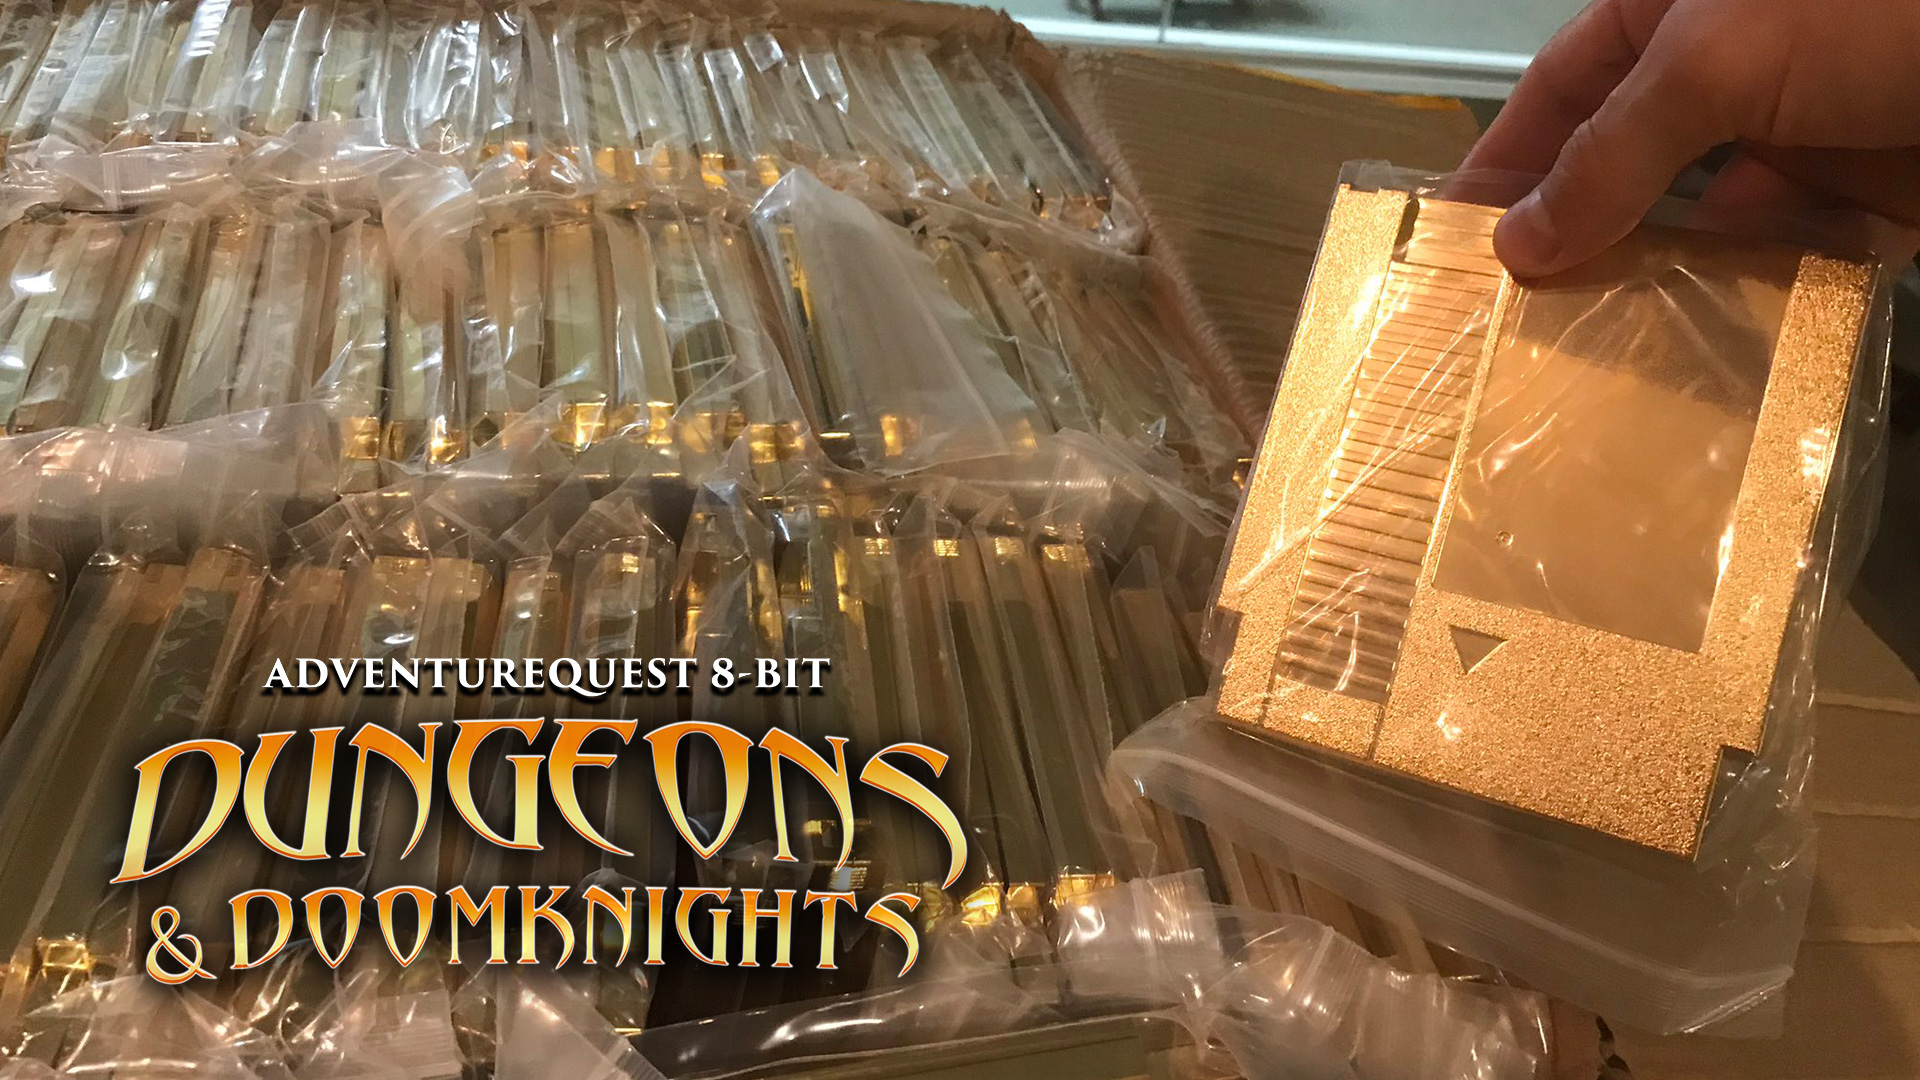 Gold carts for dungeons and doomknights arrived